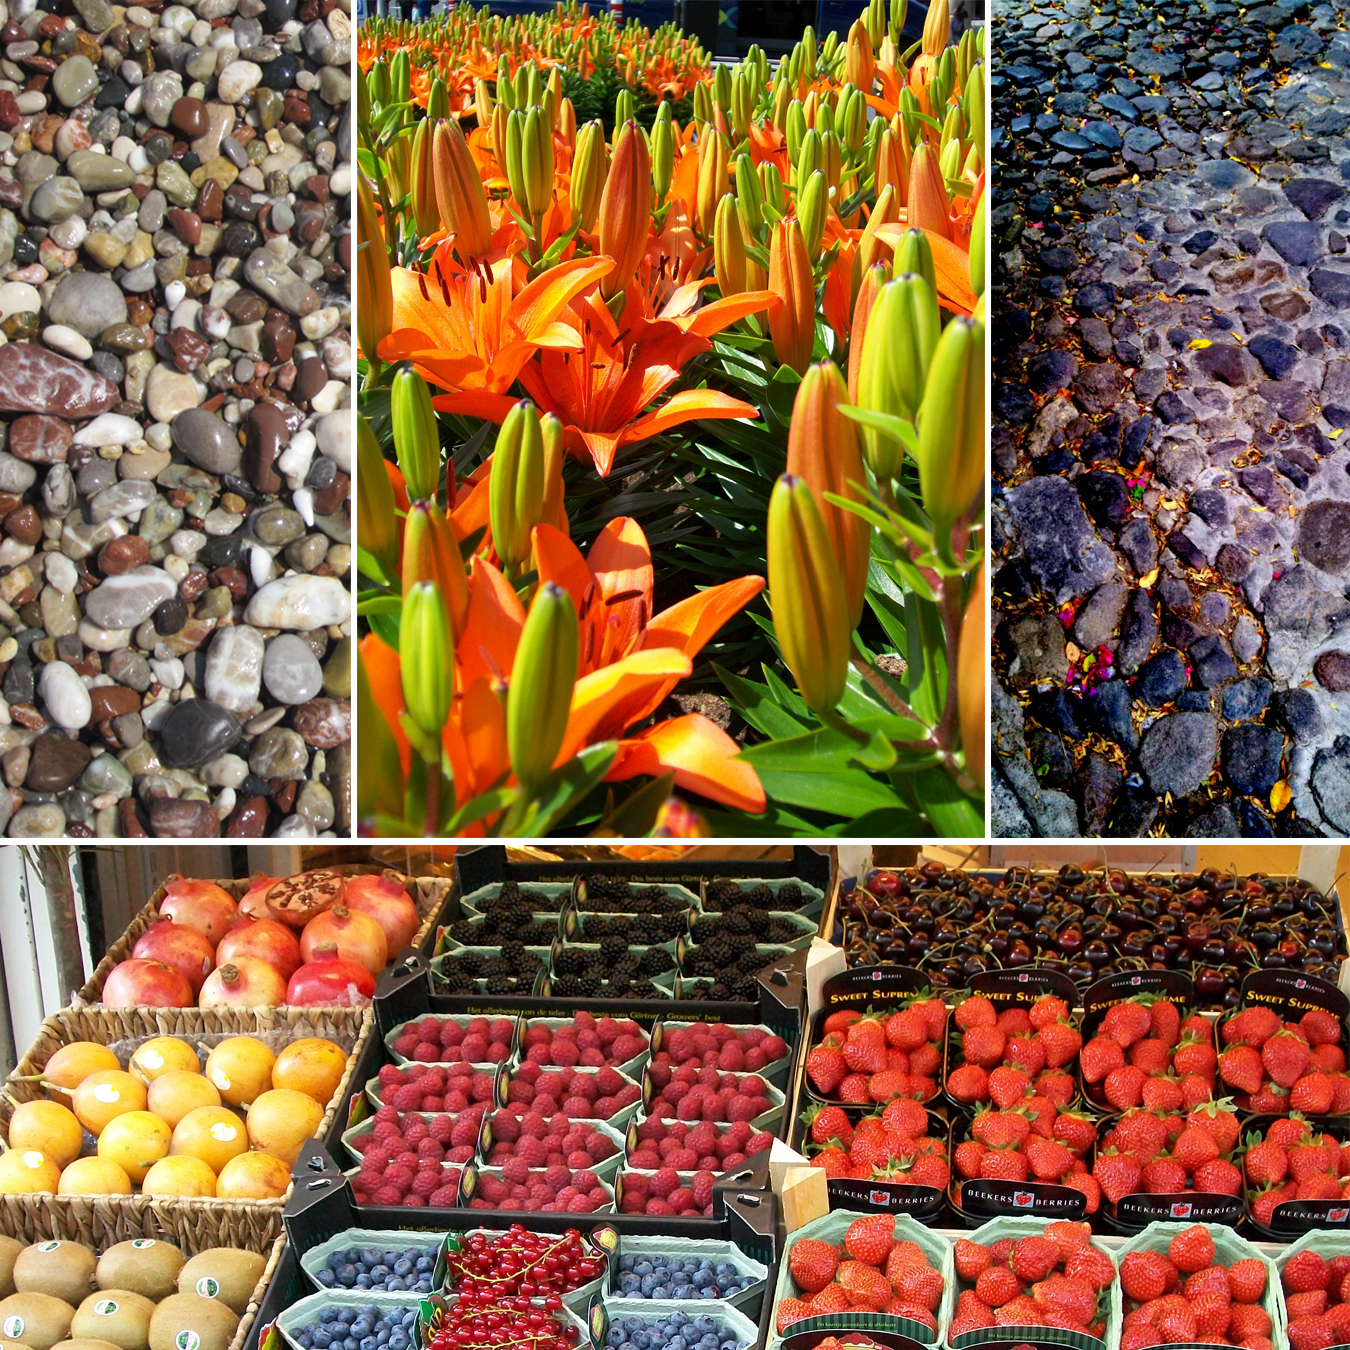 """Images (left to right, starting at top left): """"Beach Stones"""" by  Sarah Watson , """"Flowers in Amsterdam"""" by Lee Avallone, """"Streets of San Miguel"""" by Teresa Branda, and """"European Market"""" by Lee Avallone."""